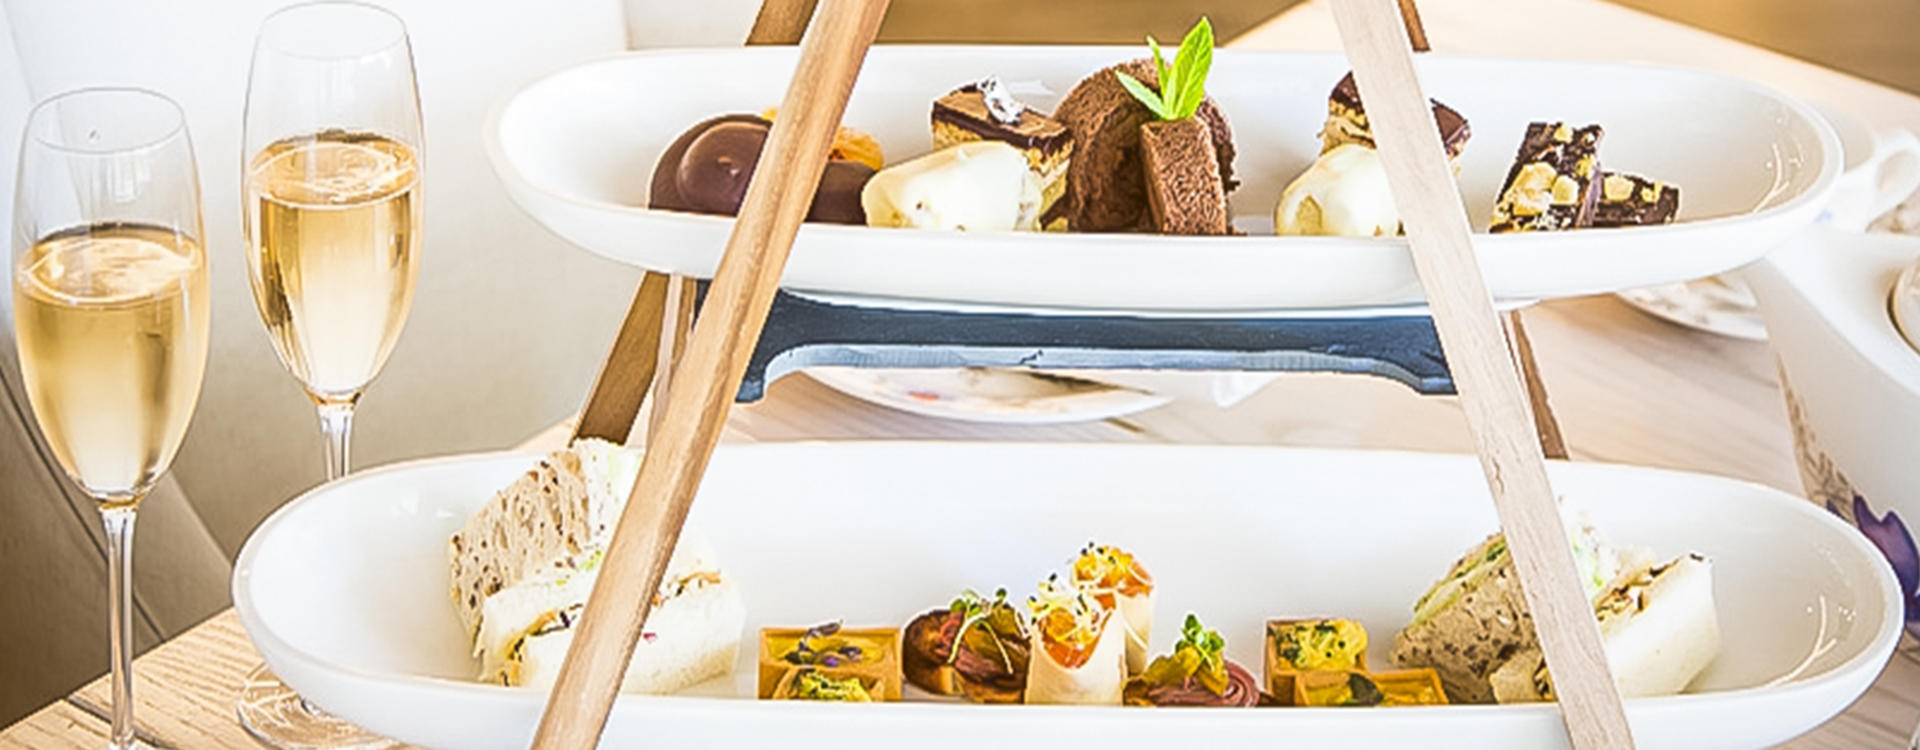 Indulge in ABODE's Sparkling High Tea in the comfort of your home